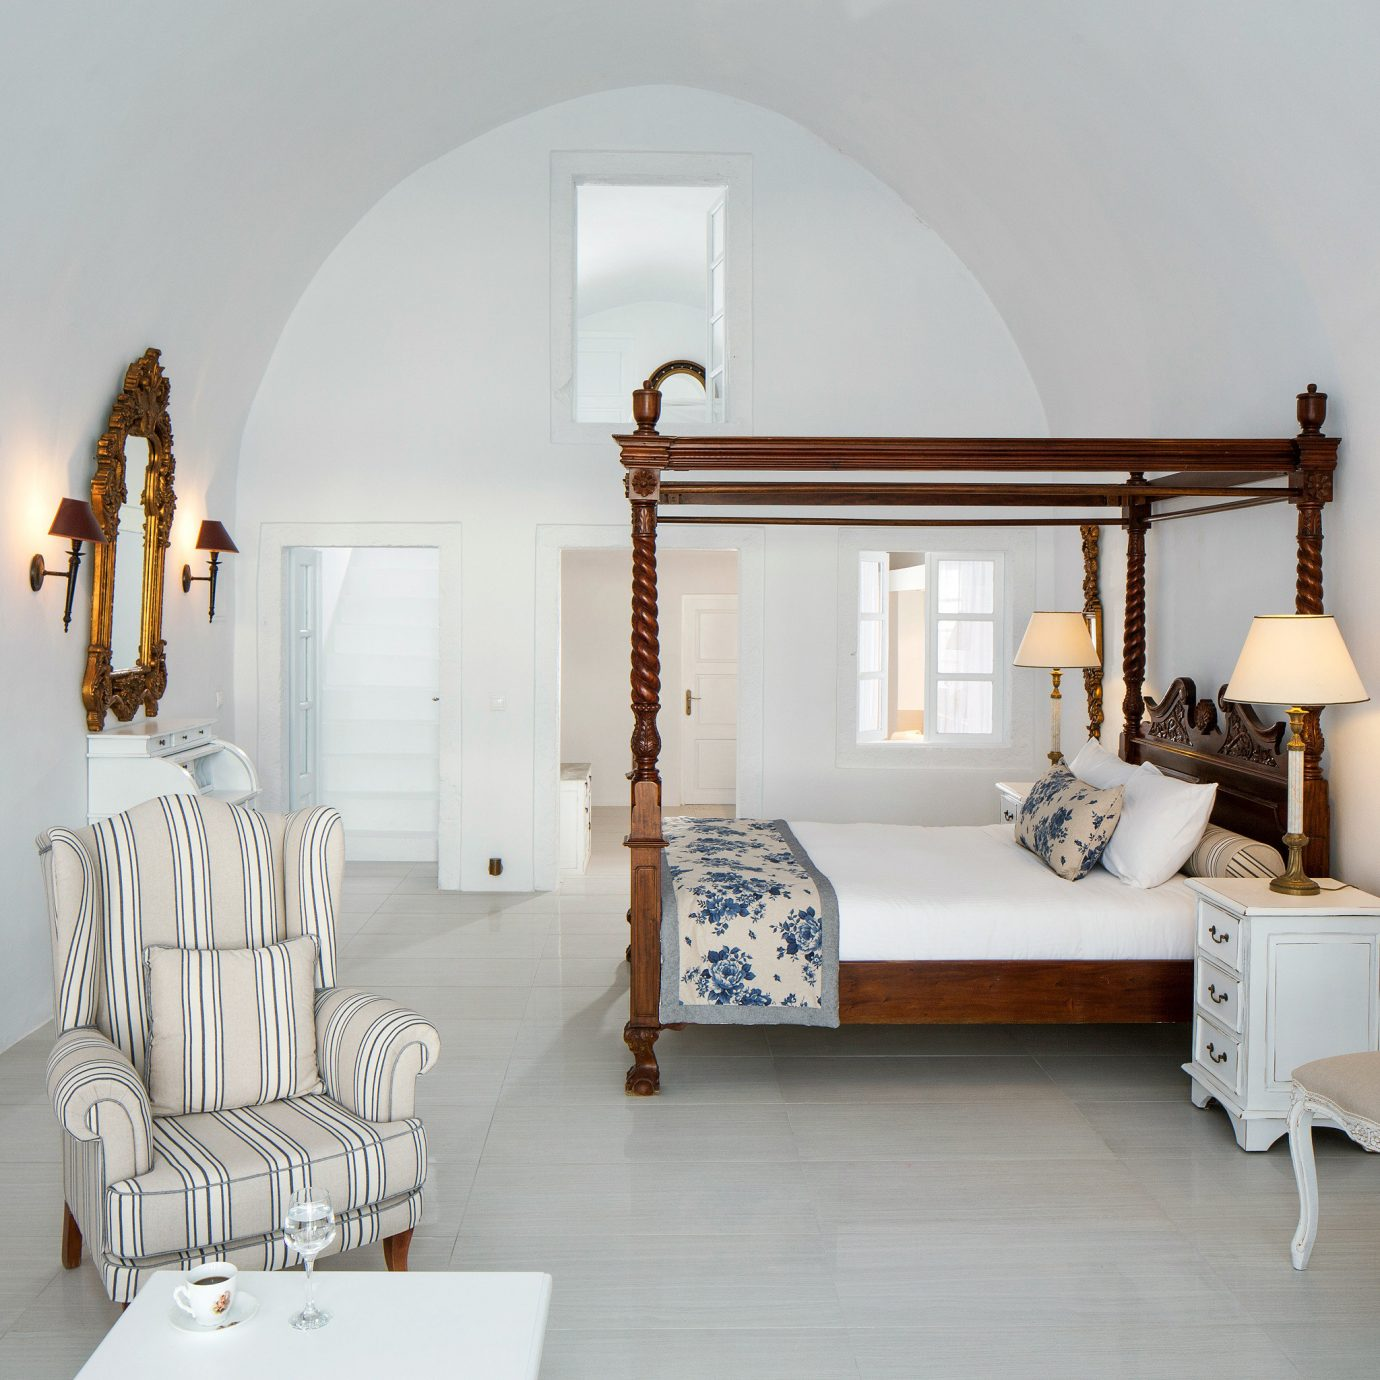 Bedroom Classic Elegant Honeymoon Luxury Romance Suite property living room home cottage